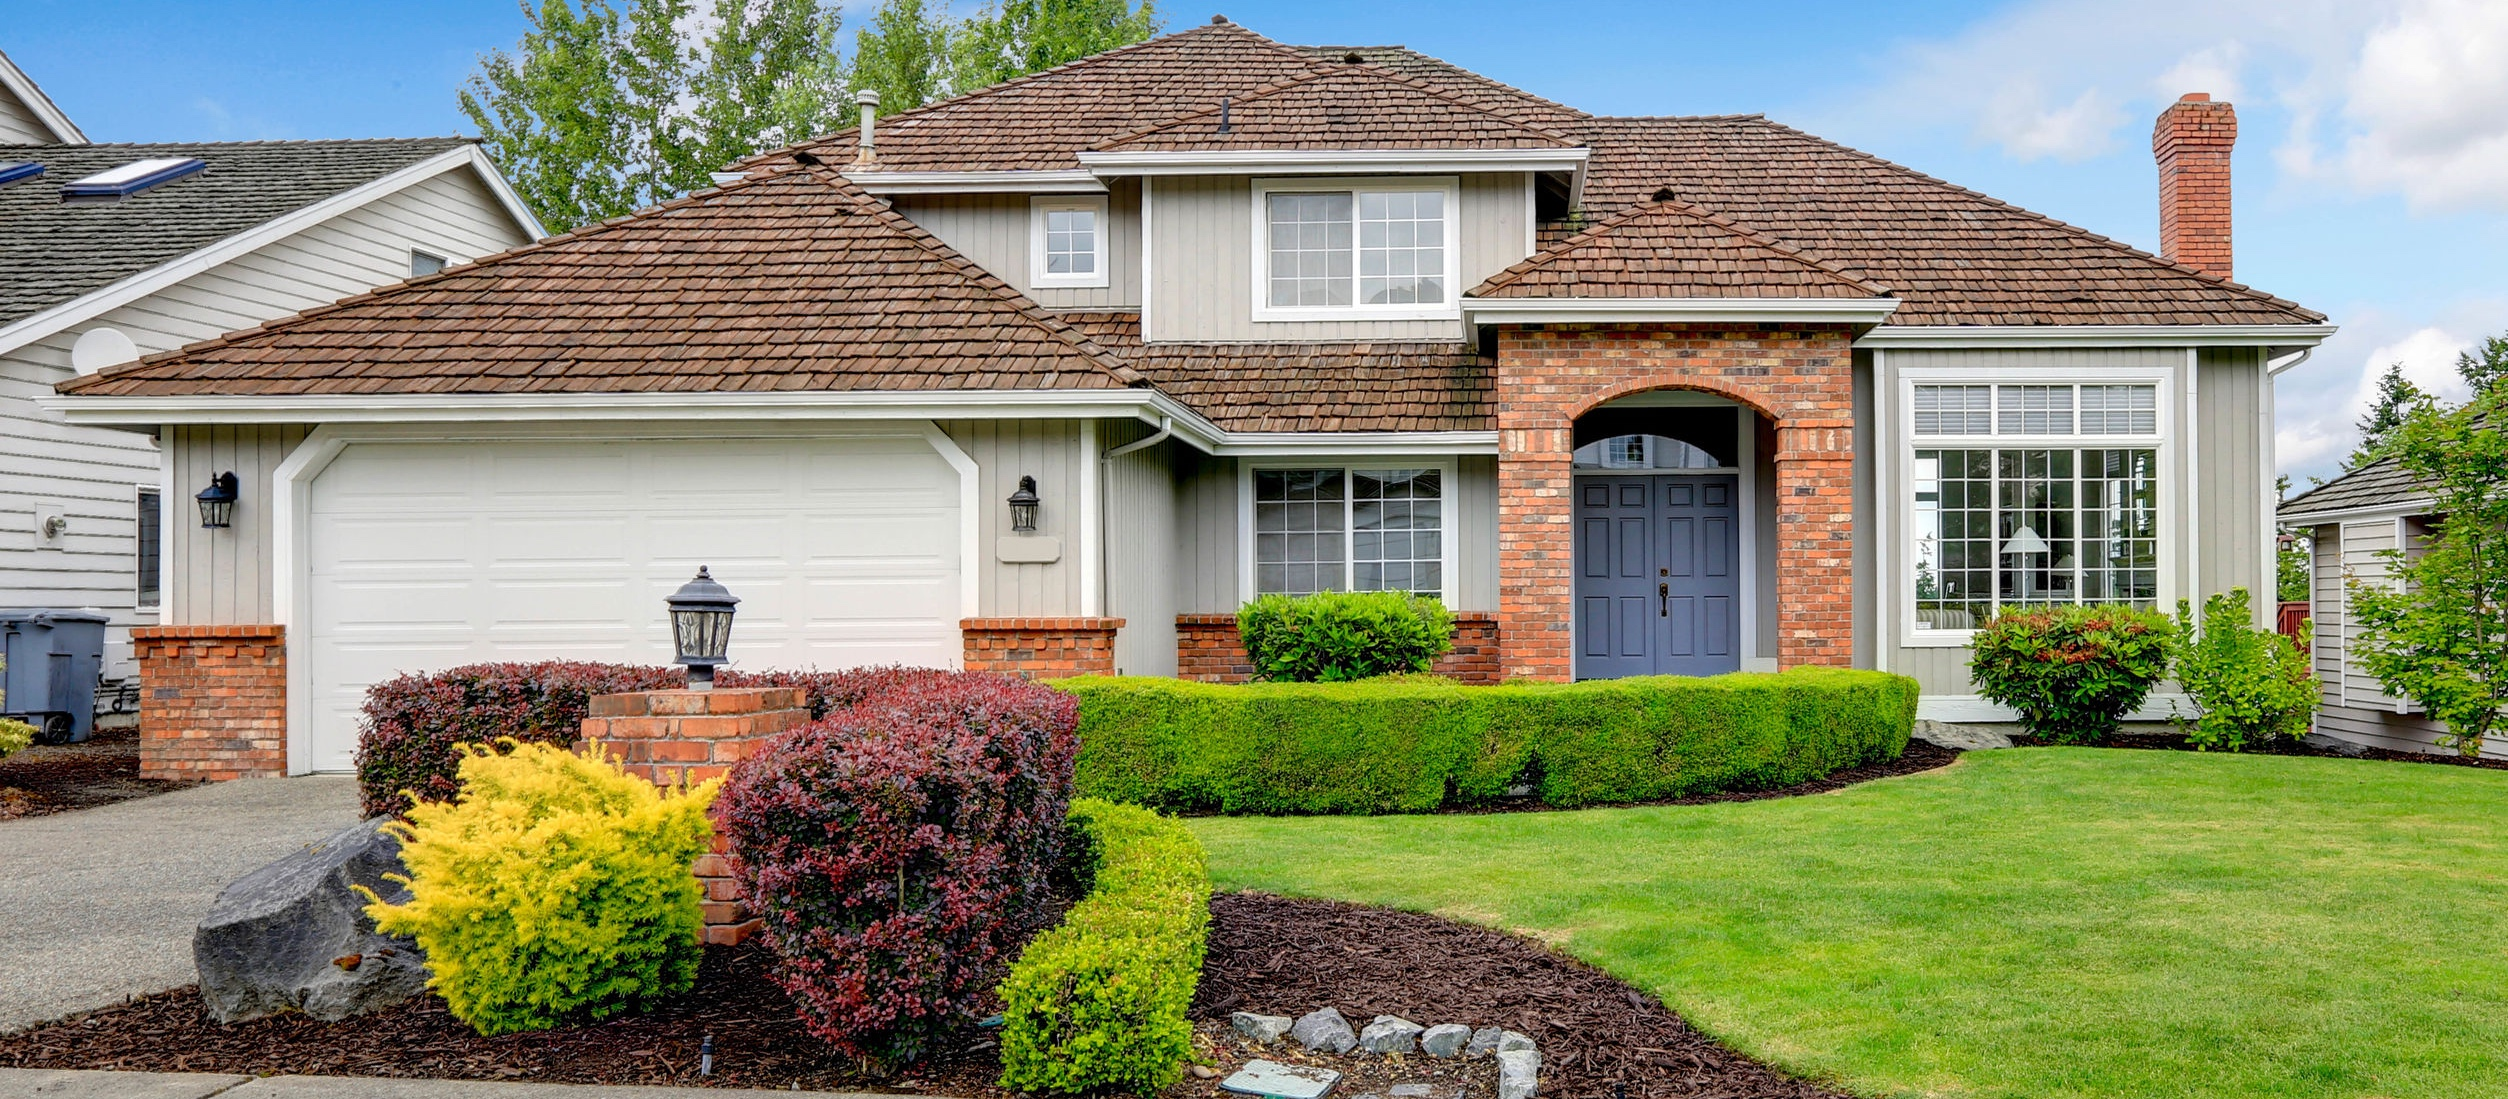 House exterior with brick trimmed entrance porch, green lawn and trimmed hedges, garage with driveway